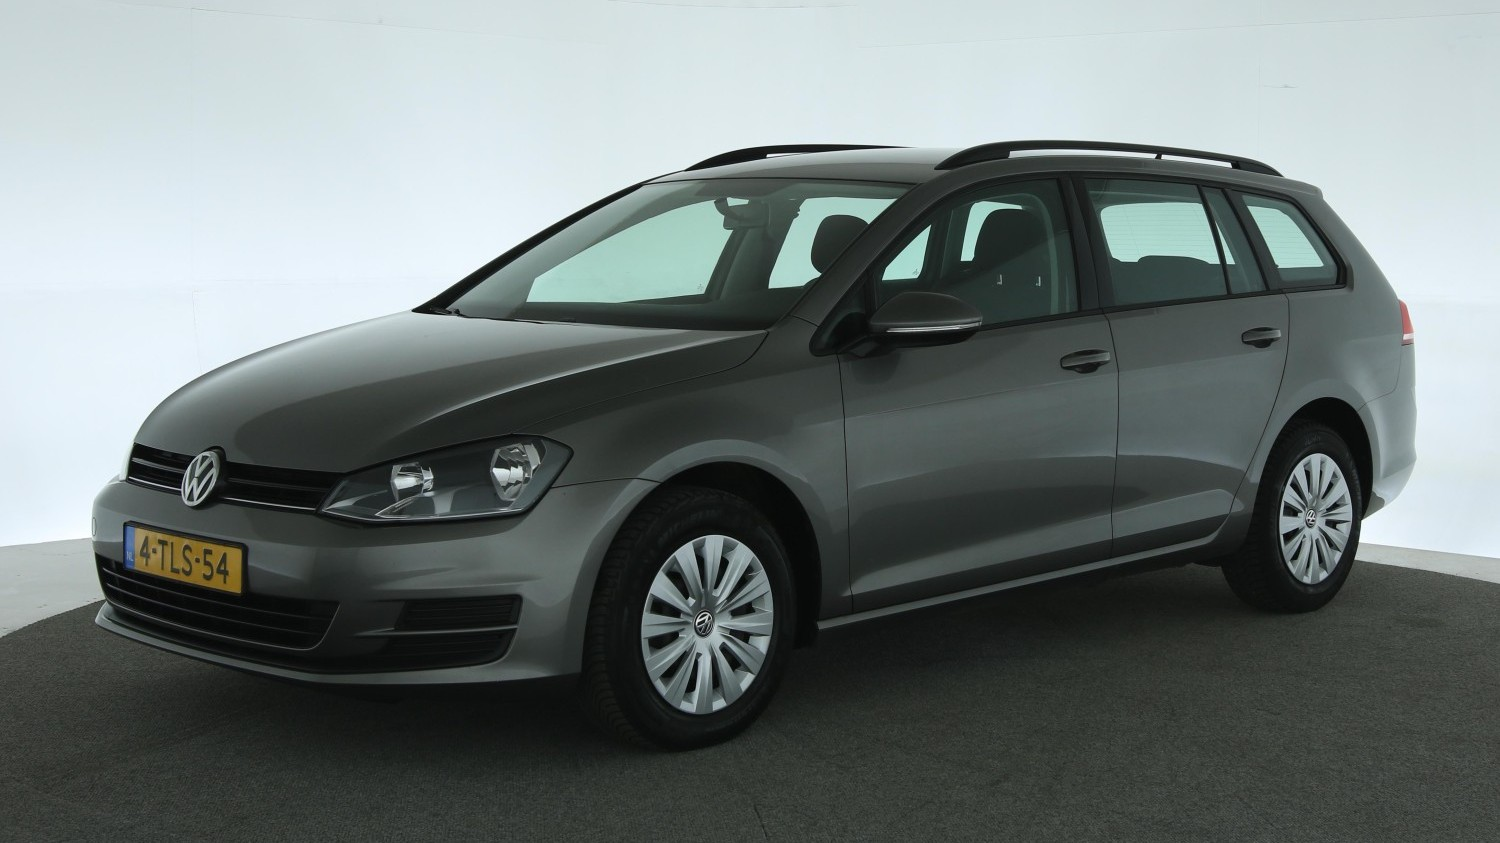 Volkswagen Golf Station 2014 4-TLS-54 1